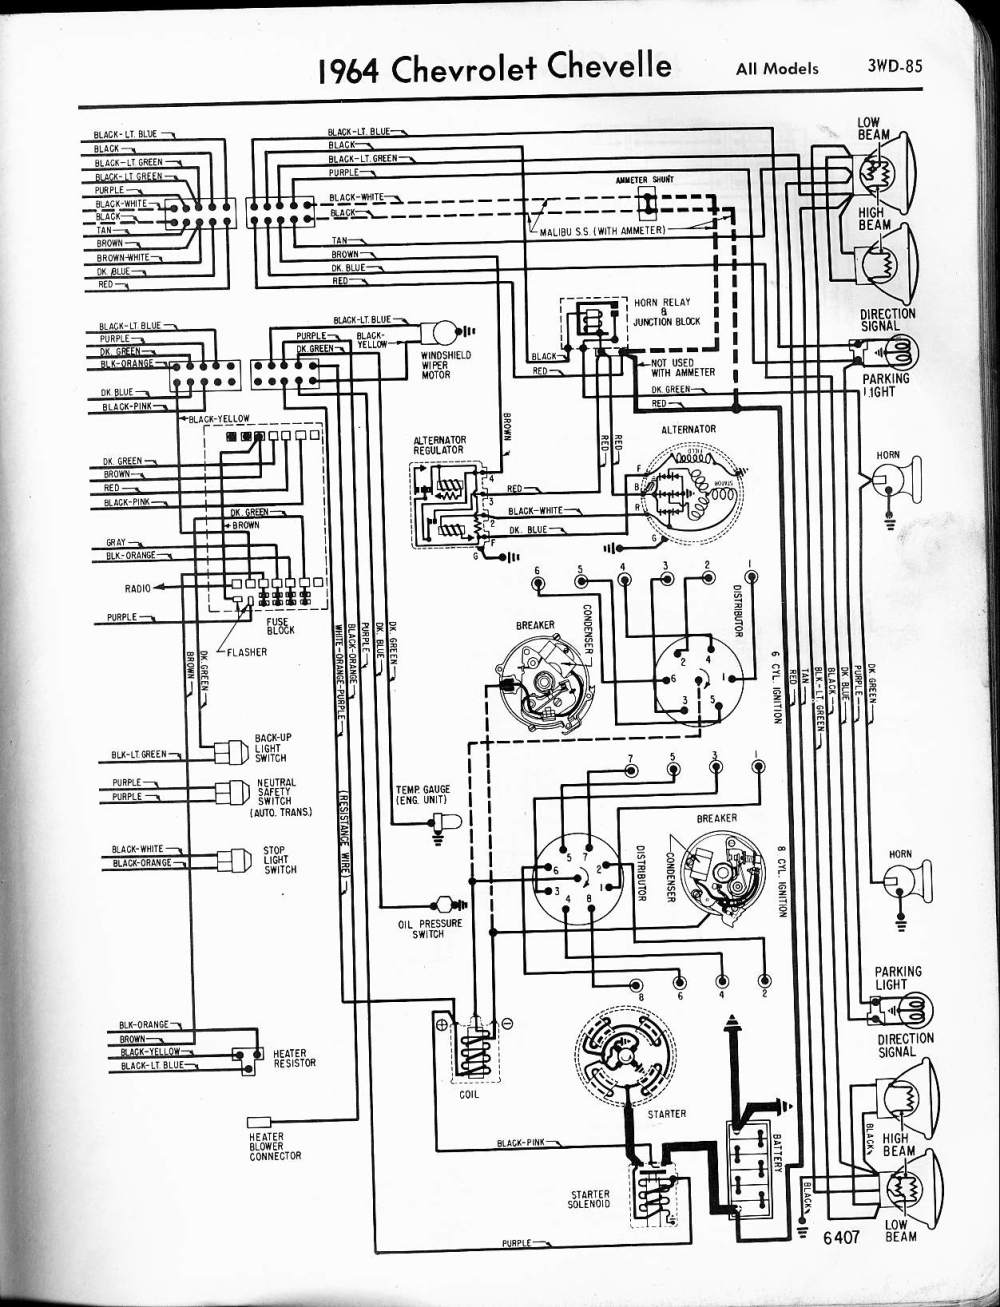 medium resolution of 65 el camino wiring diagram wiring library rh 93 codingcommunity de 1984 el camino fuse box 1987 el camino fuse box diagram